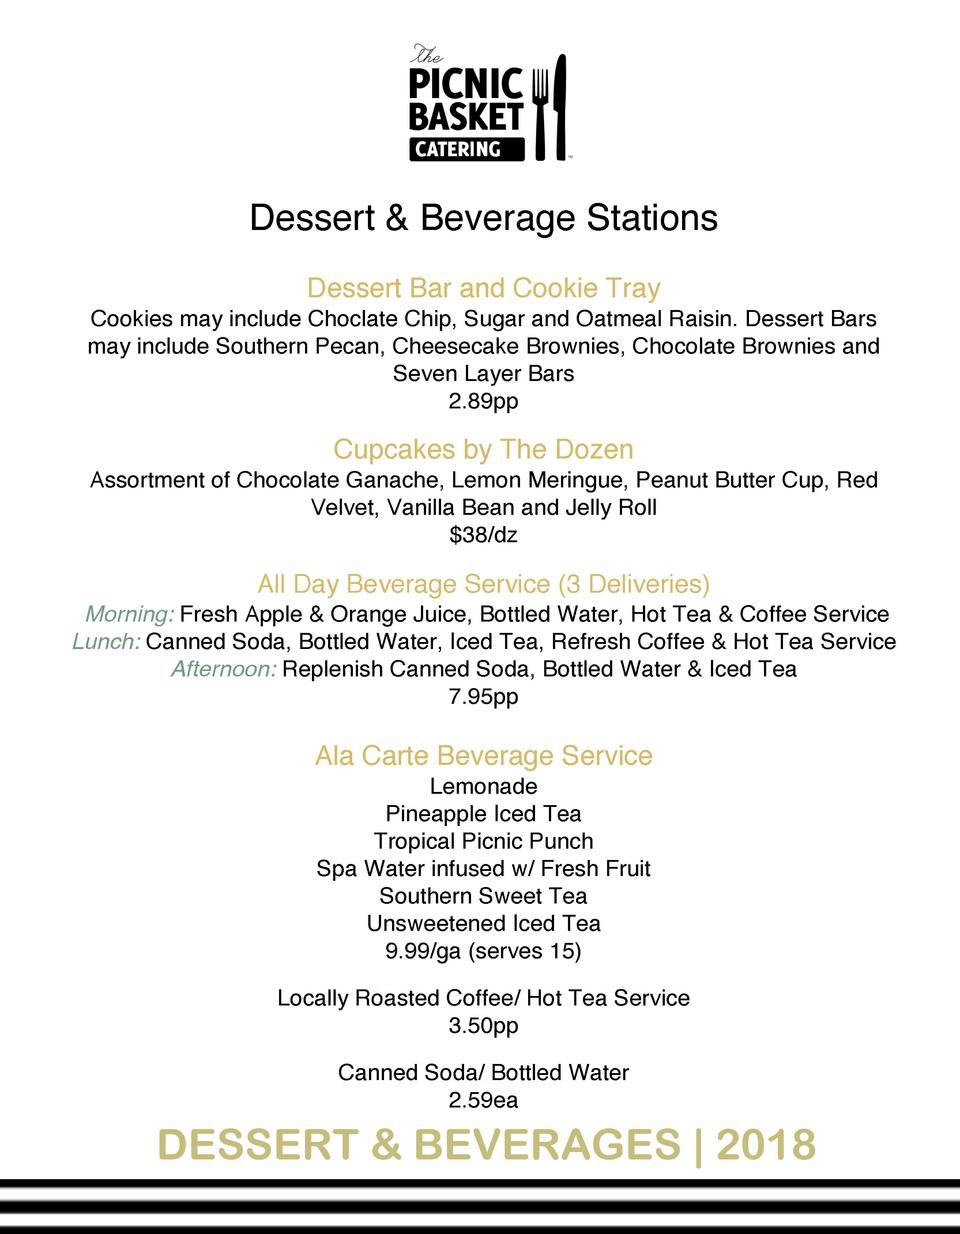 Dessert   Beverage Stations Dessert Bar and Cookie Tray Cookies may include Choclate Chip, Sugar and Oatmeal Raisin. Desse...